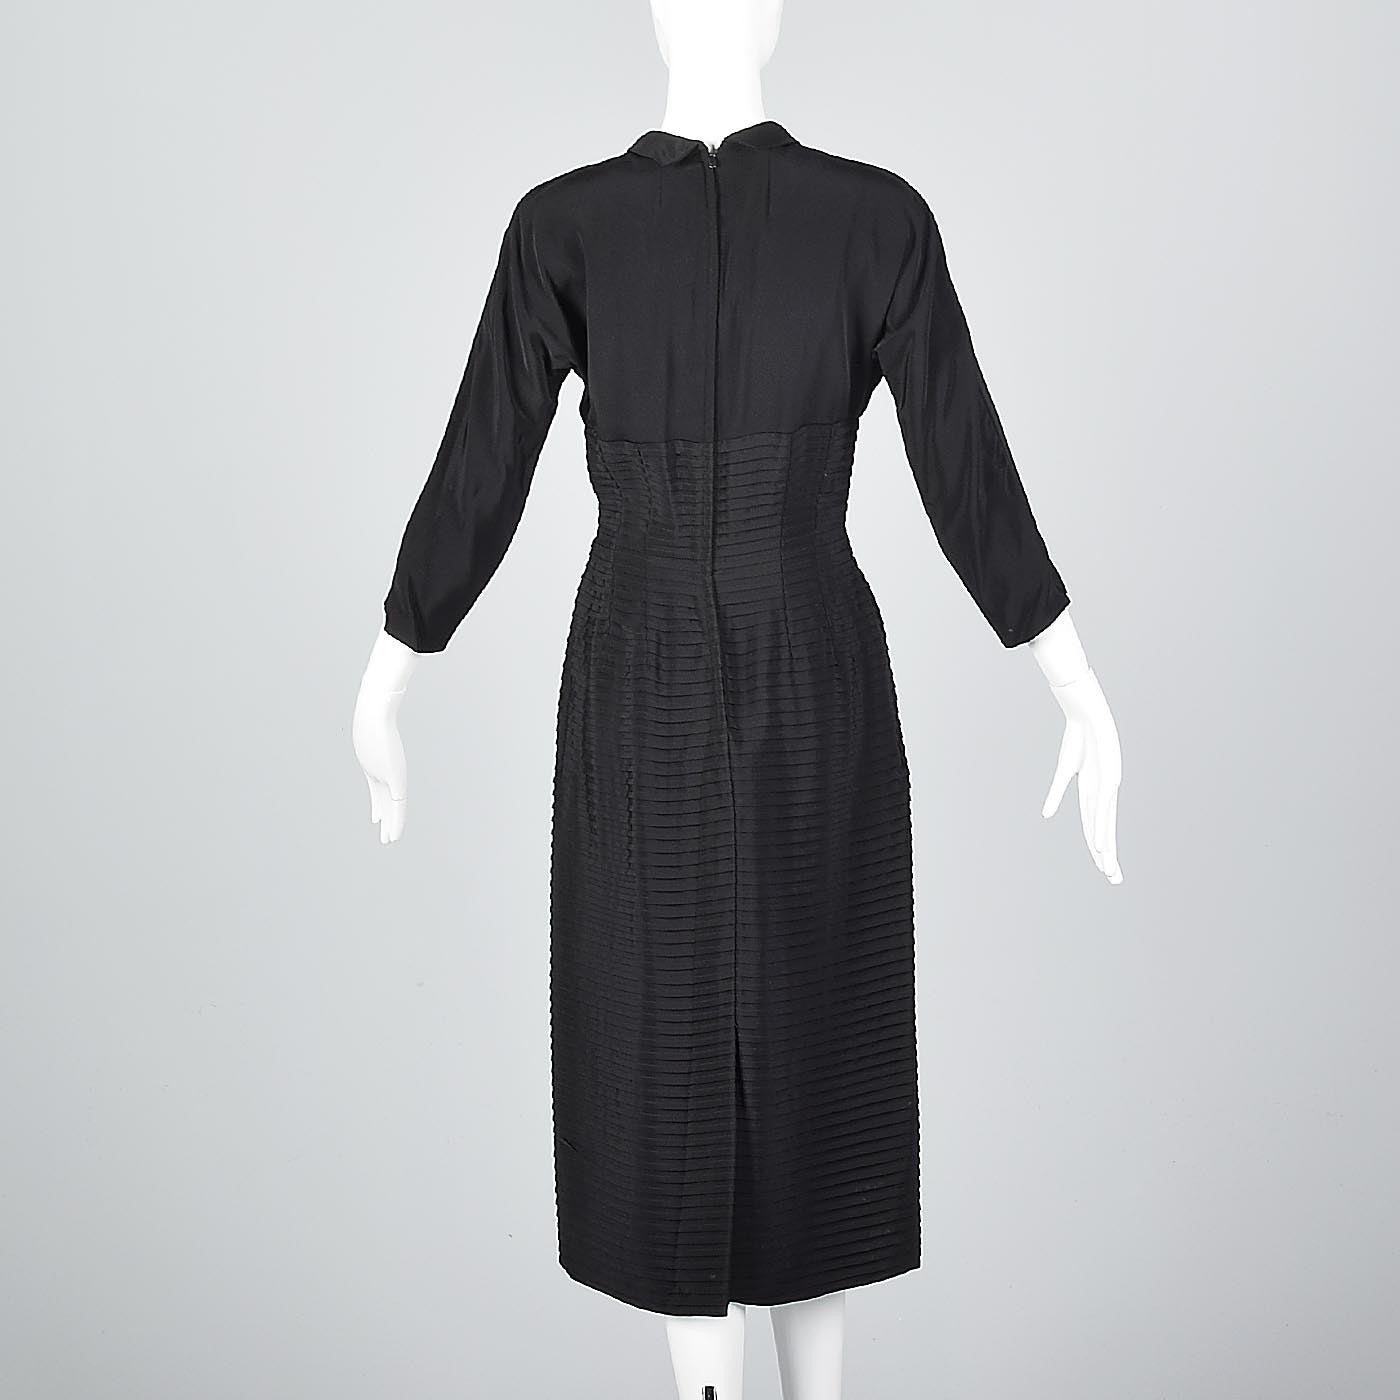 1950s Pleated Black Dress